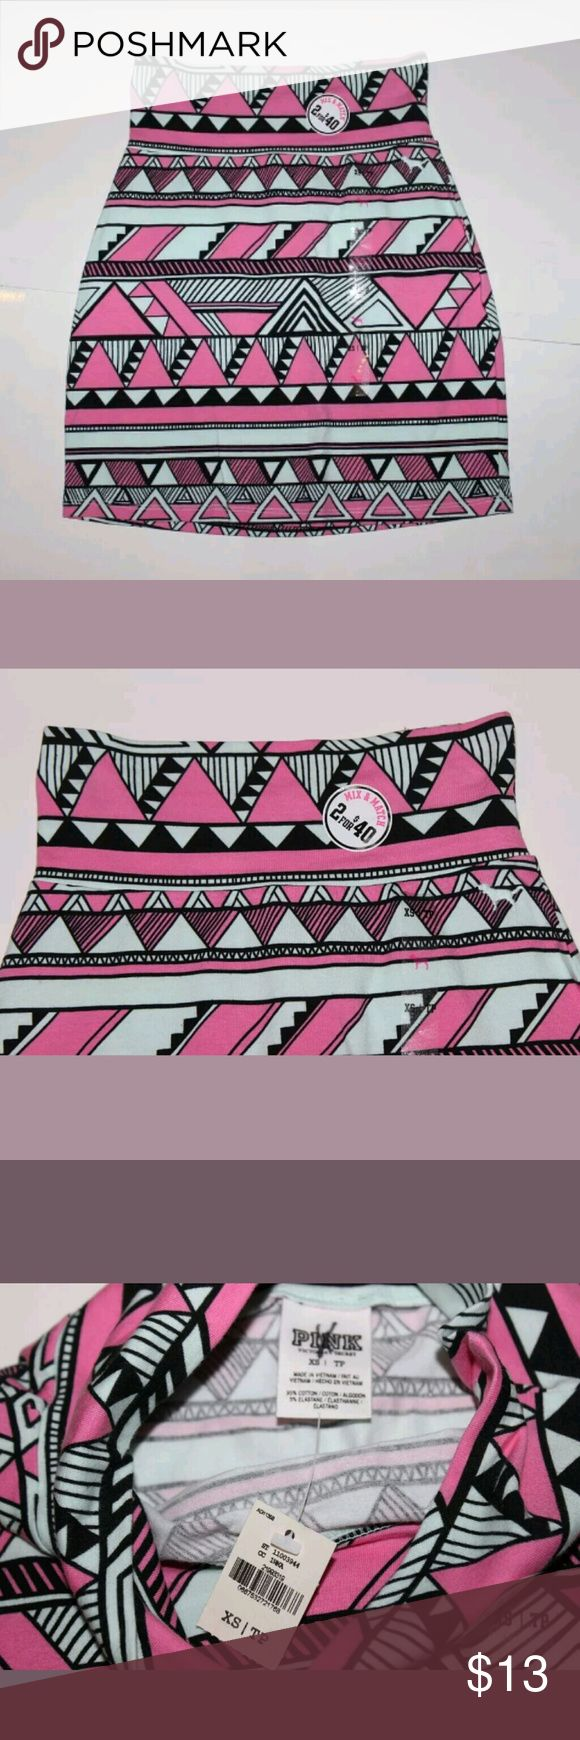 New Victoria's Secret PINK XS Aztec Print Skirt Brand: Pink by Victoria Secret  Details: Aztec printed mini skirt  Item condition: New with tags  Size: Extra Small Manufactured color: Pink Super soft fabric  Retails for $20 PINK Skirts Mini